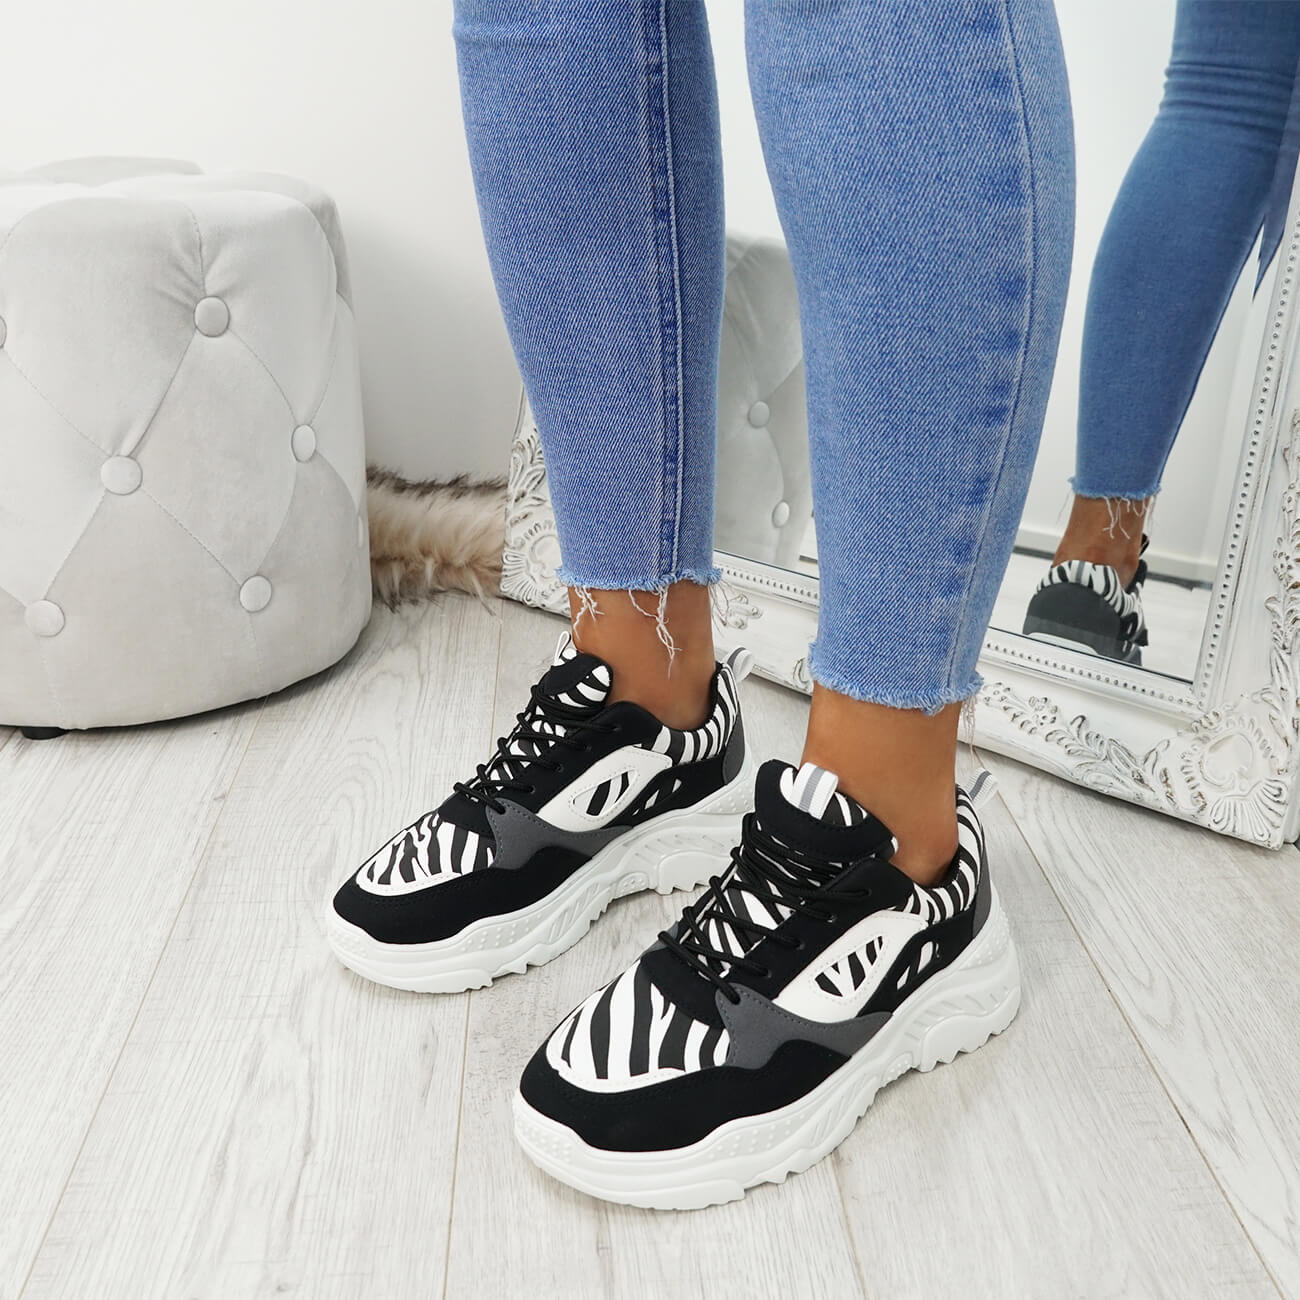 WOMENS-LADIES-LACE-UP-ZEBRA-PATTERN-CHUNKY-TRAINERS-SNEAKERS-PLIMSOLL-SHOES thumbnail 7